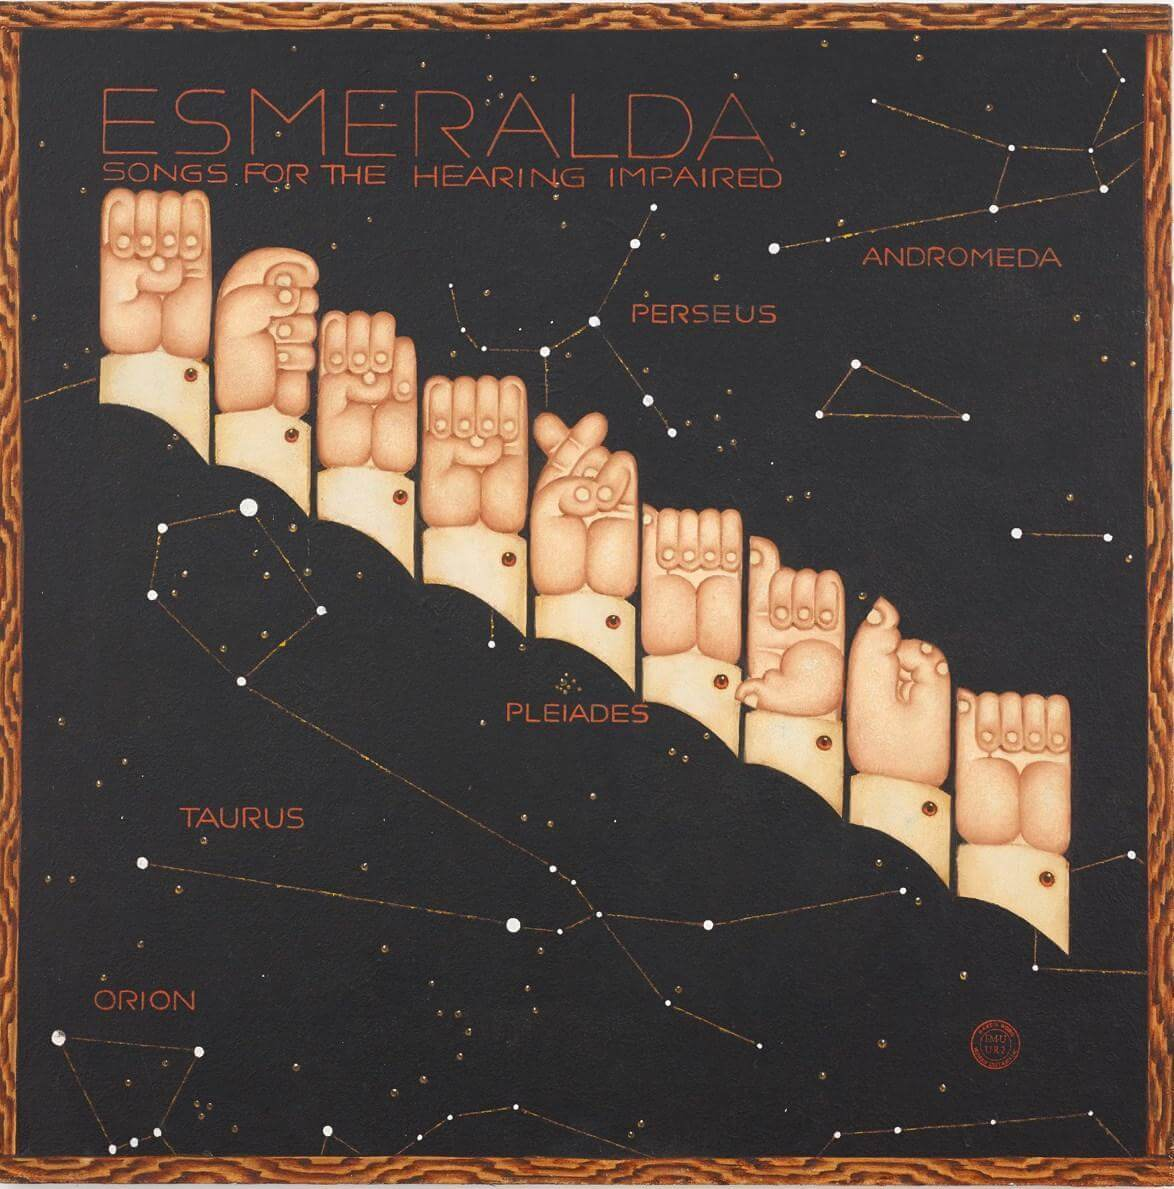 Esmeralda (Songs for the hearing impaired), 1982